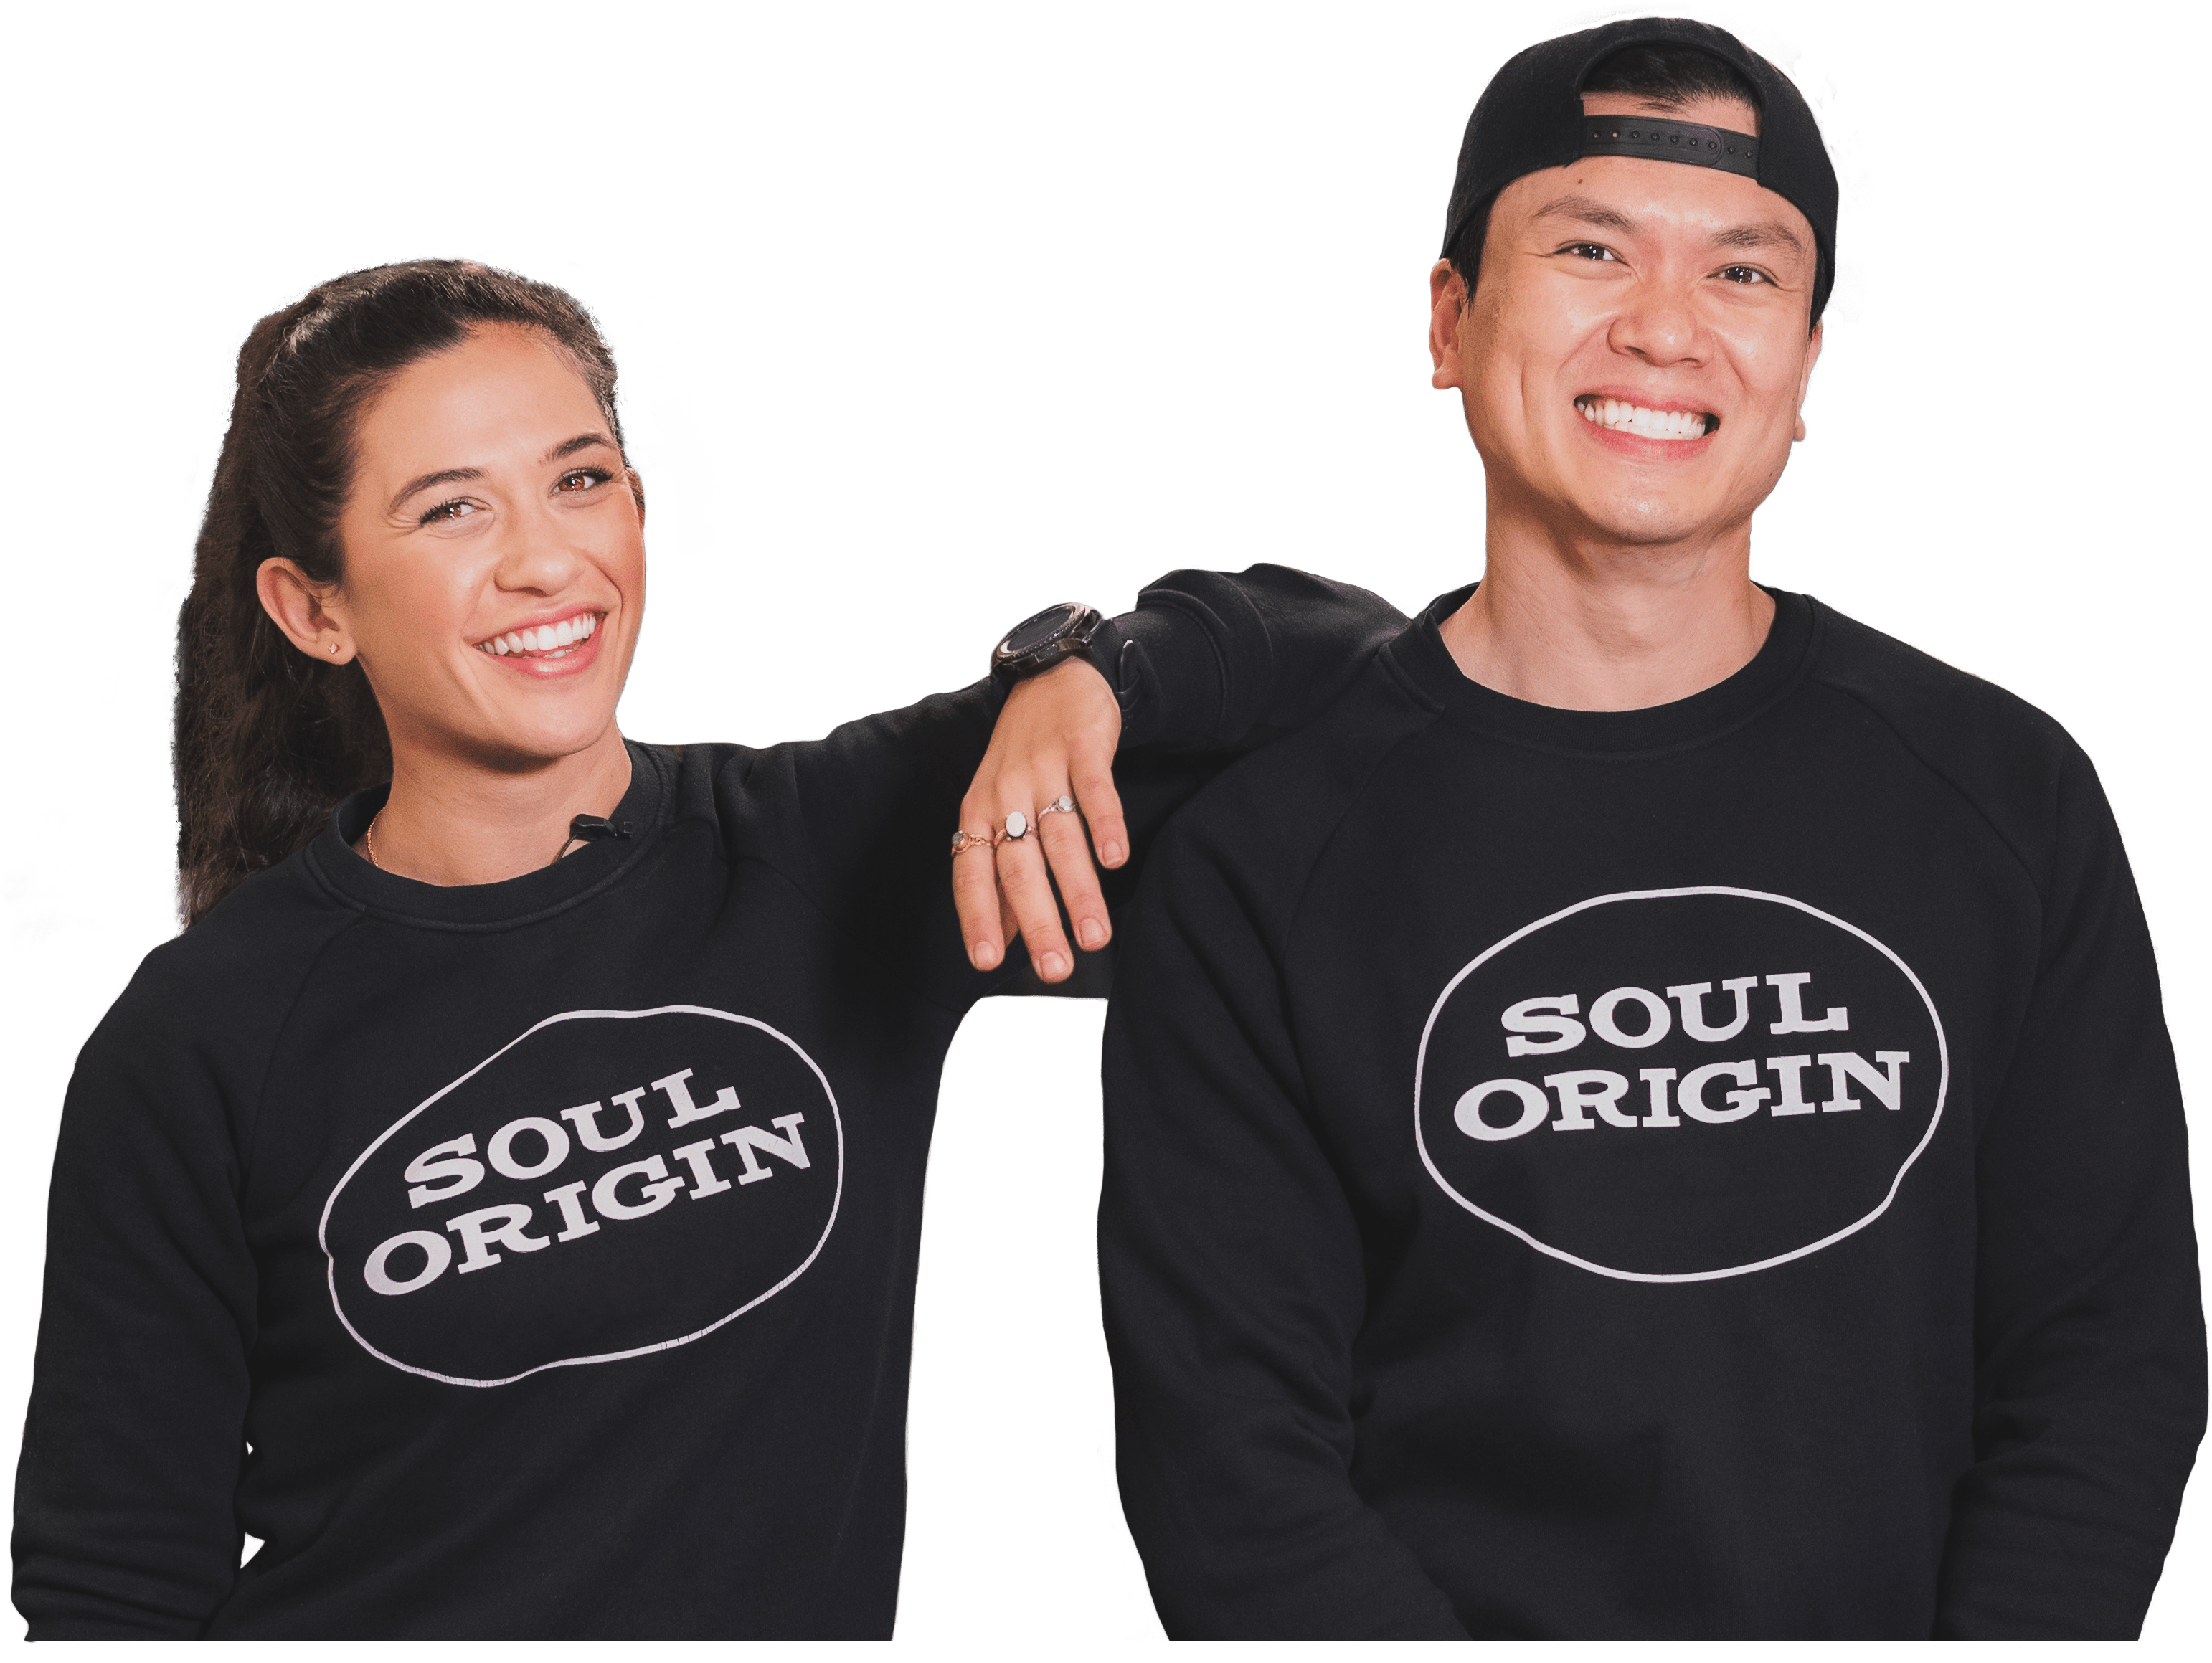 Franchise Opportunities with Soul Origin - meet Lisa and Jimmy